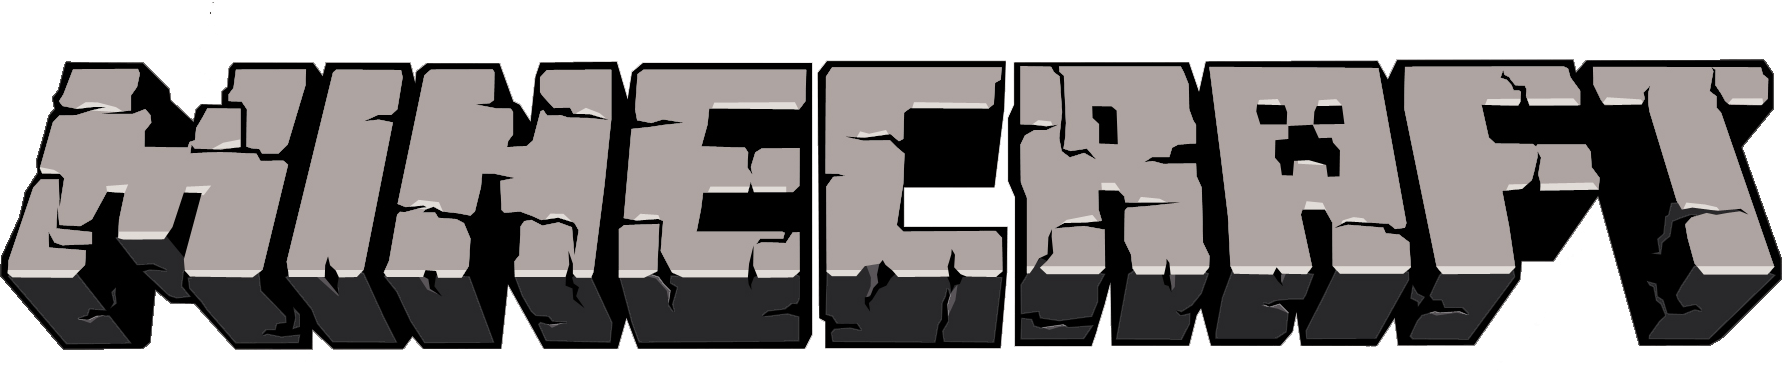 http://img1.wikia.nocookie.net/__cb20111230161227/assassinscreed/images/7/70/Minecraft-logo.png